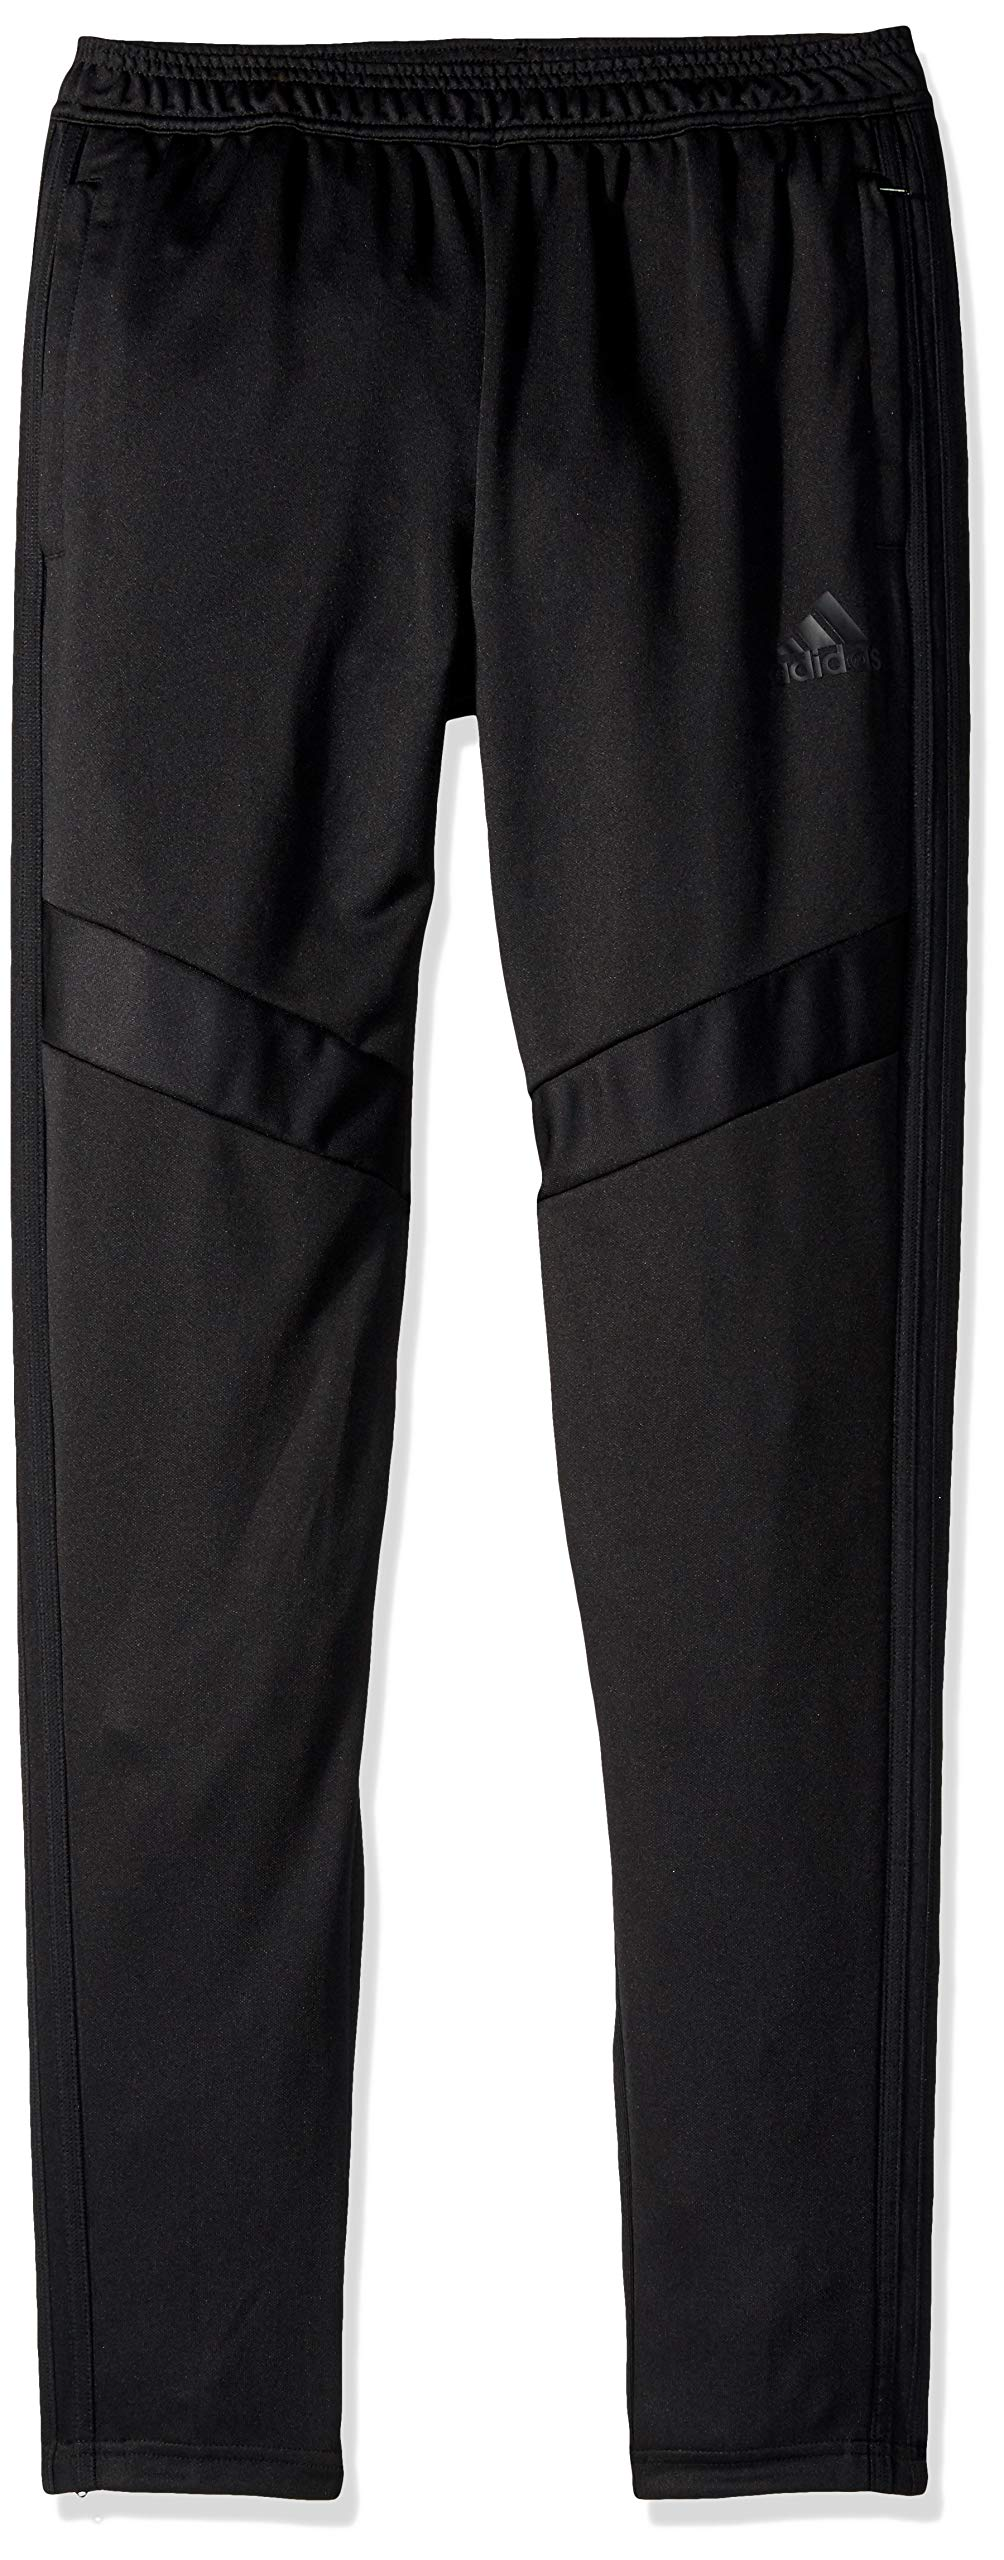 adidas Youth Tiro19 Youth Training Pants, Black, XX-Small